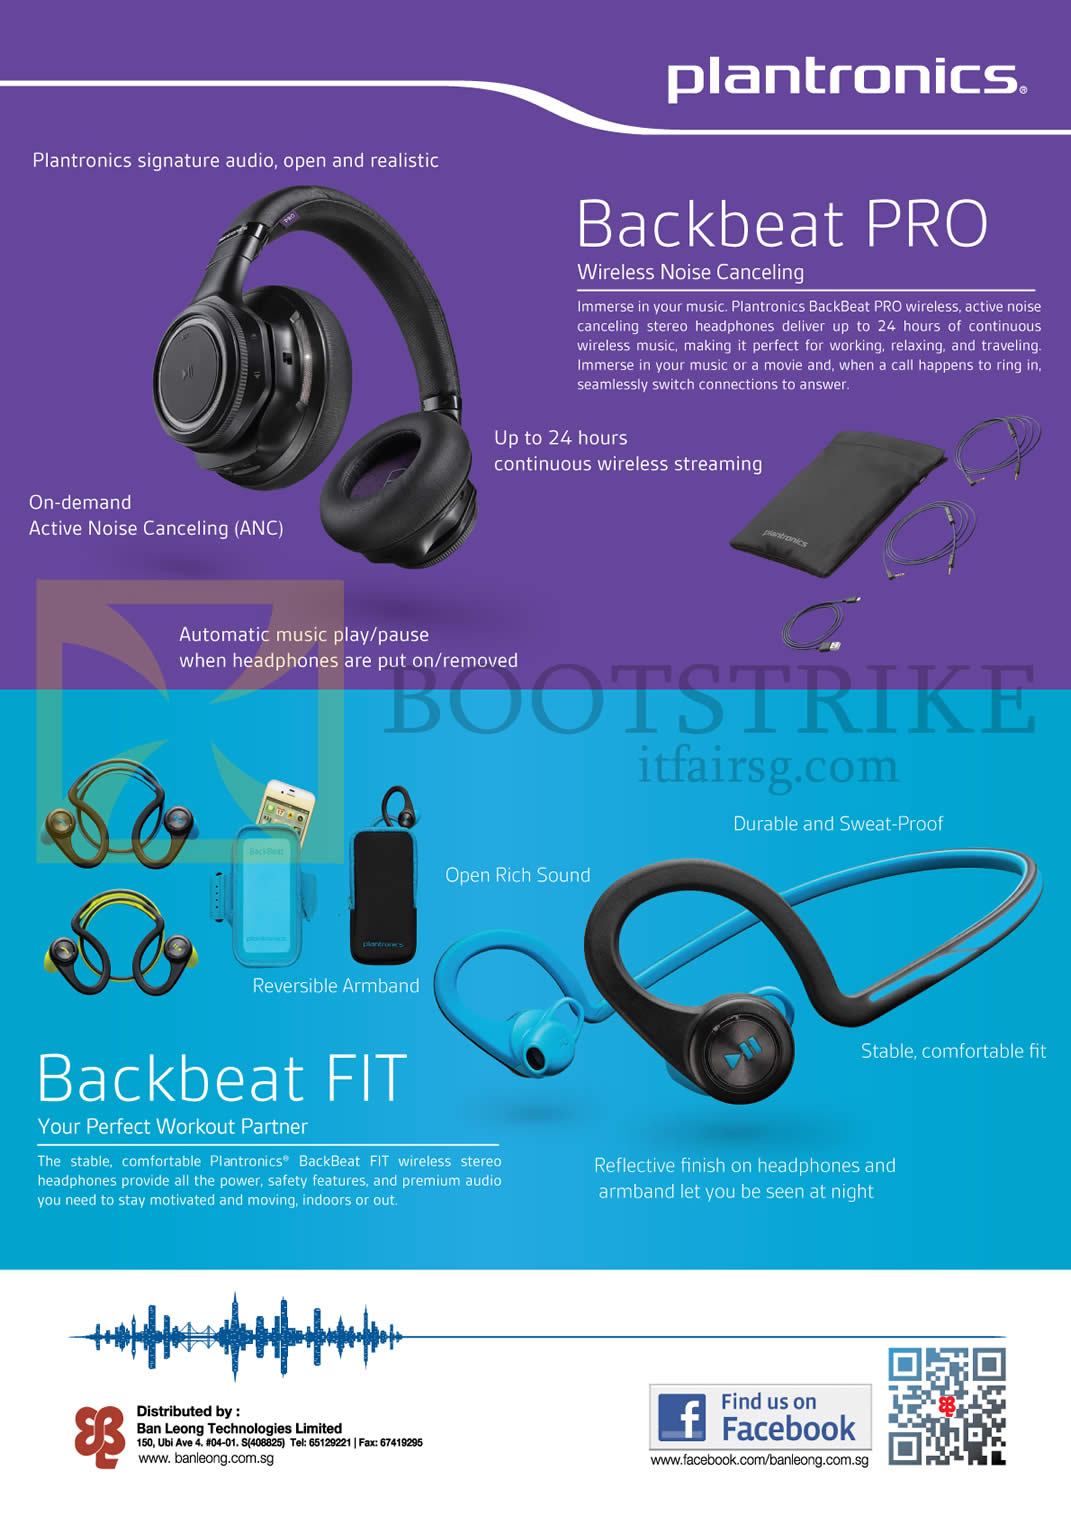 SITEX 2014 price list image brochure of Plantronics Headphones Wireless Backbeat Pro, Backbeat Fit